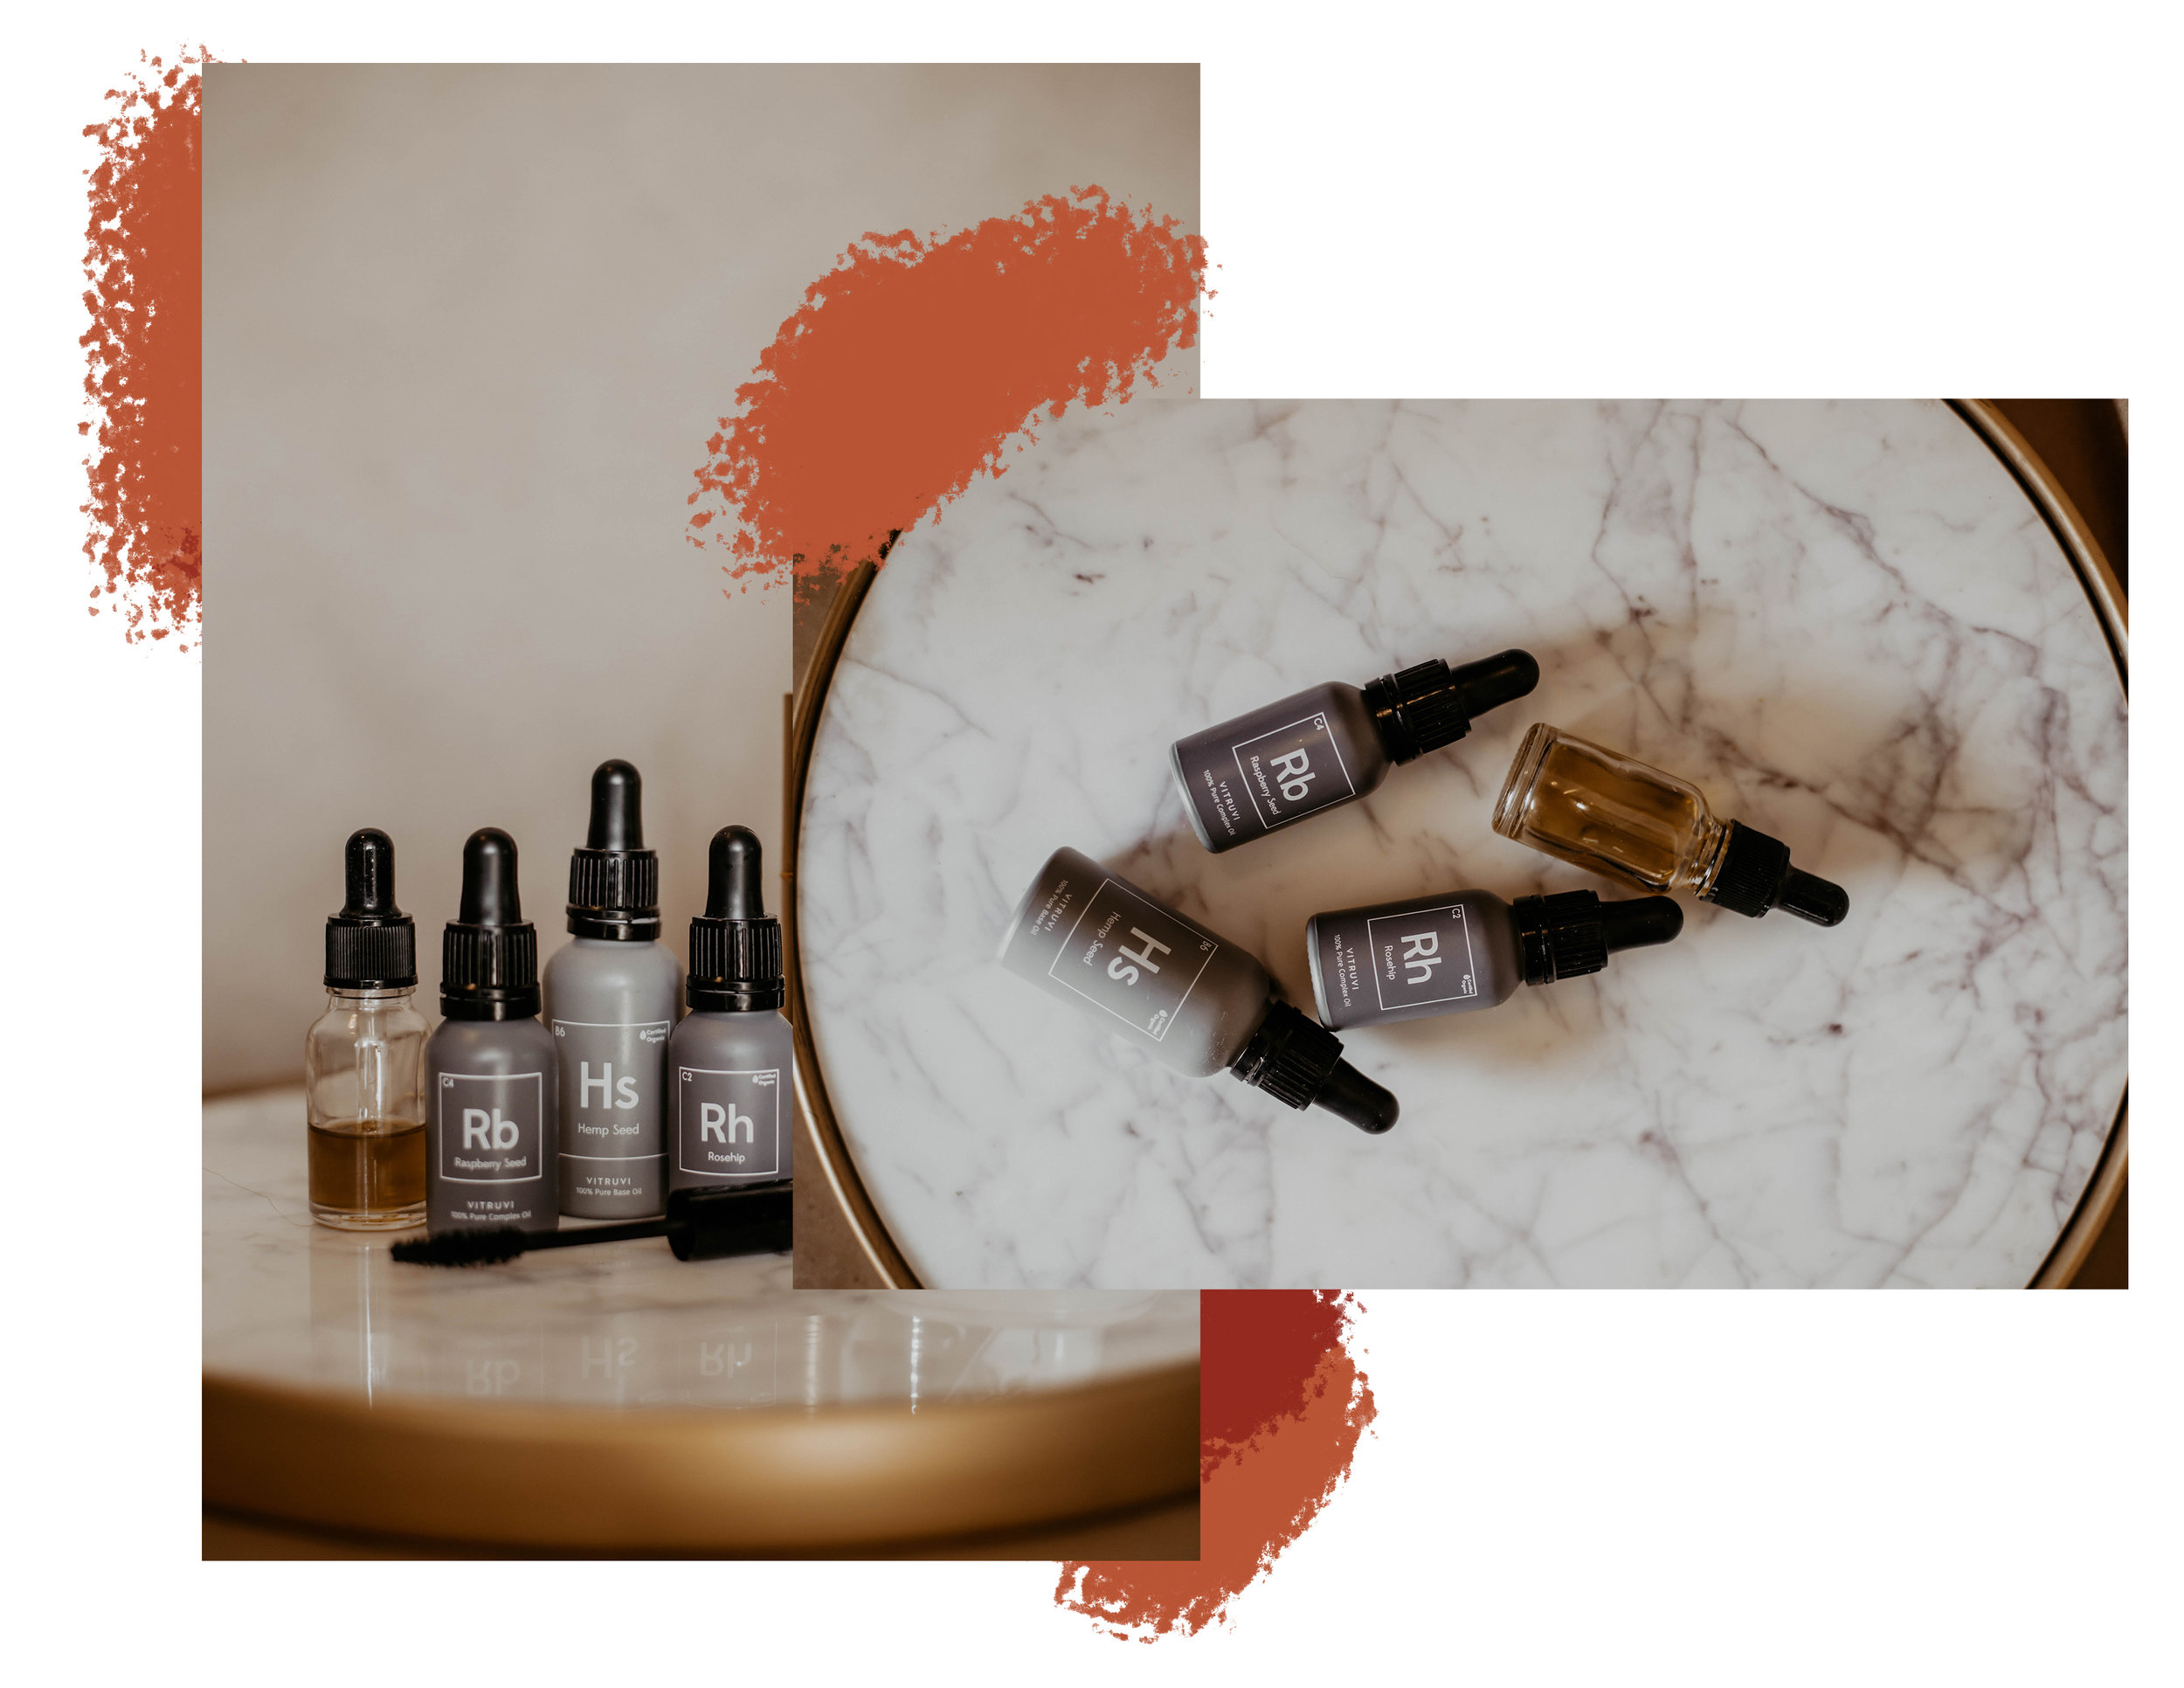 Vitruvi Skincare - Collaborating with Vitruvi has been so lovely for multiple reasons. Beyond their aesthetically conscious and wellness-focused diffuser designs, they also have a dynamic skincare line that has given my skin that extra moisture that it needed throughout the winter months.